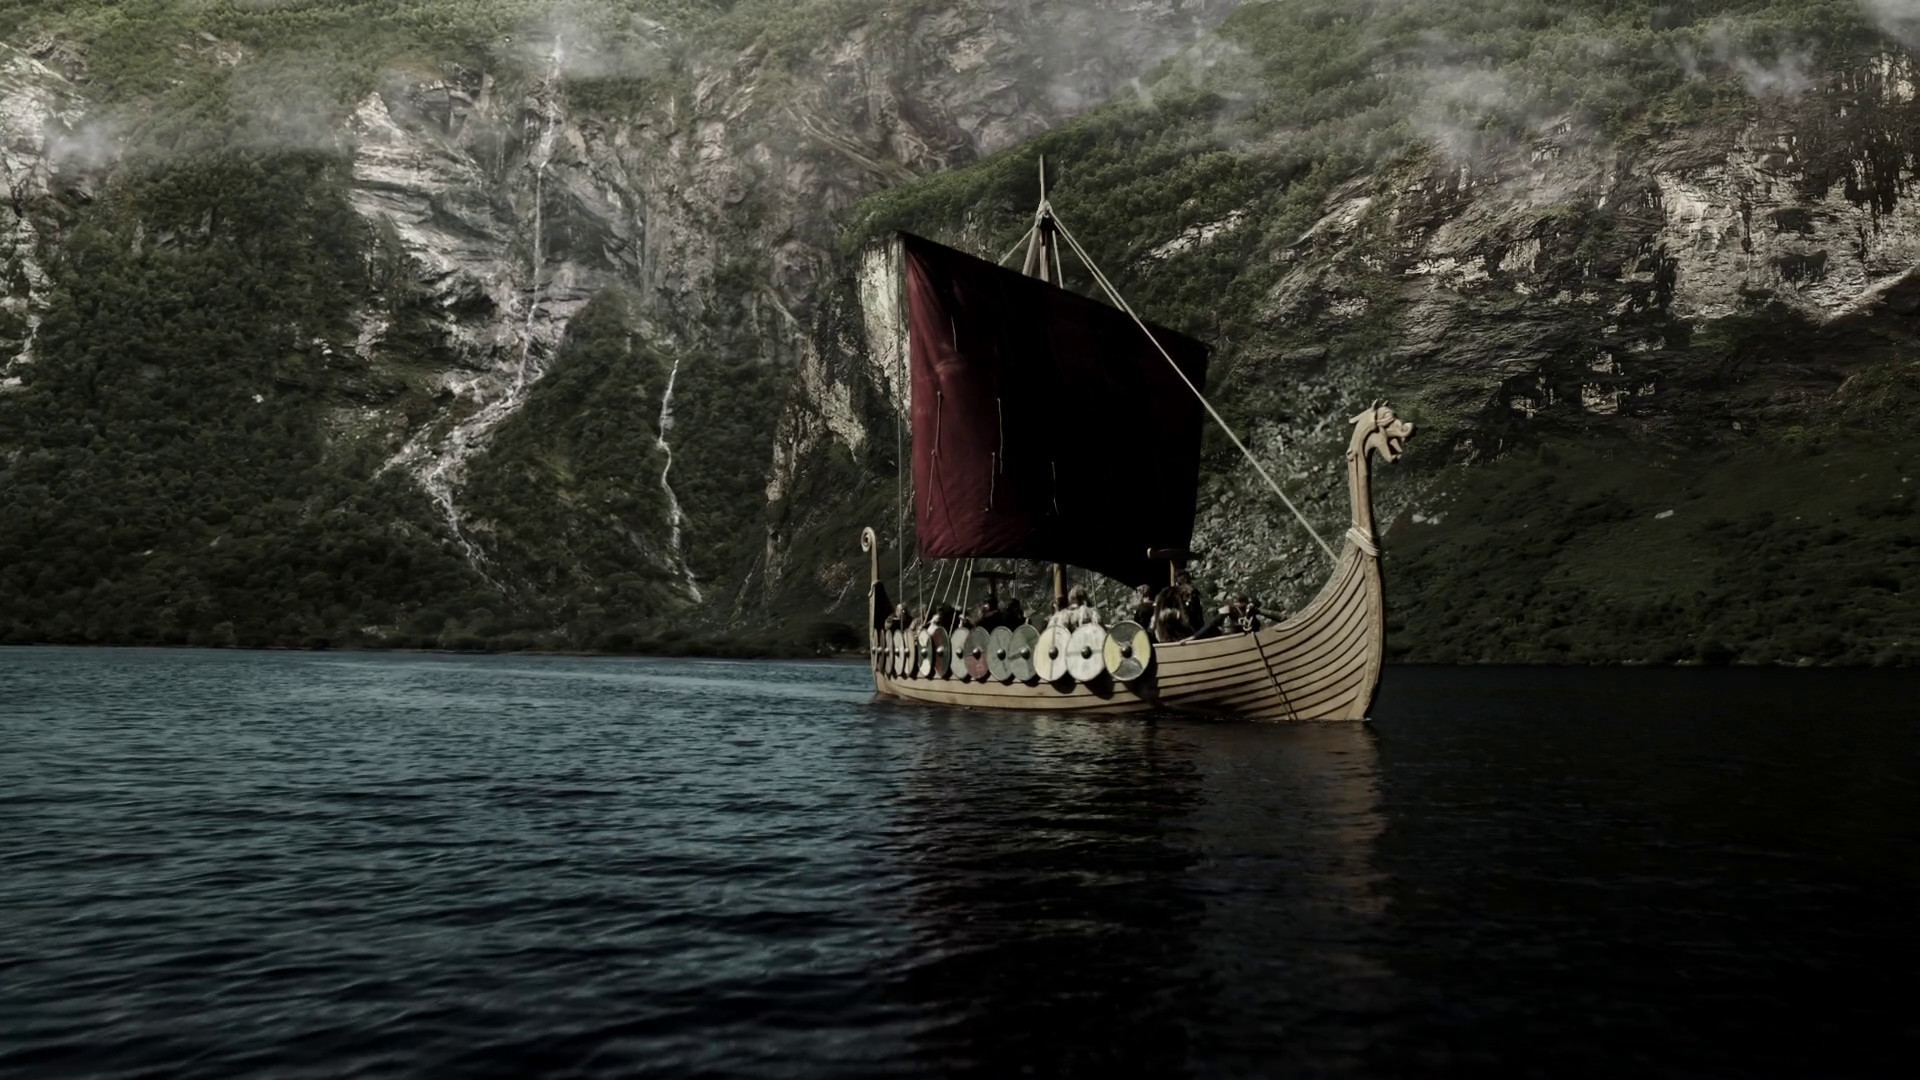 Red sail of a Viking ship wallpapers and images – wallpapers, pictures .